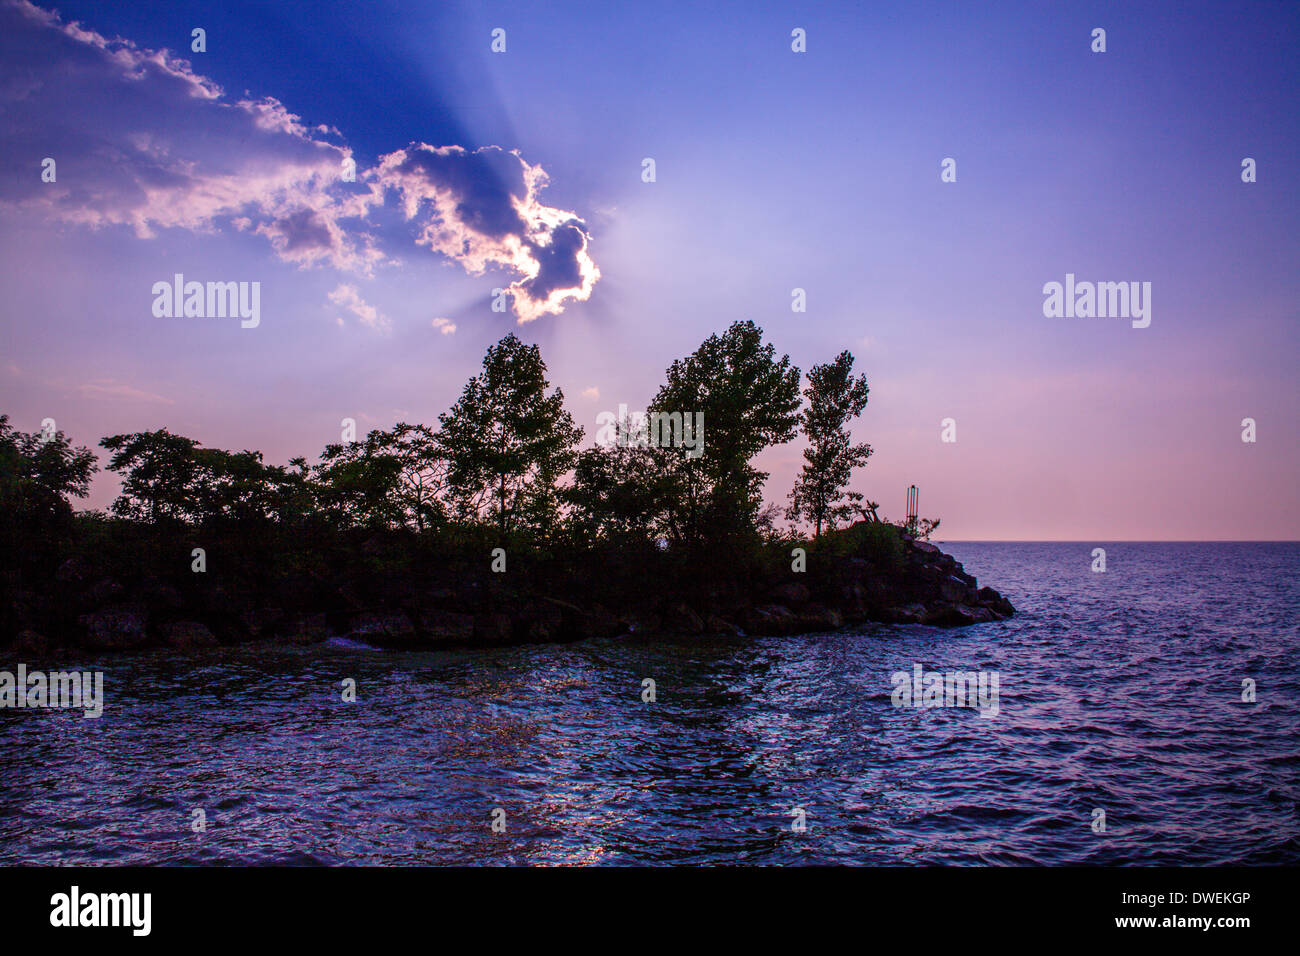 Nearing Sunset Over The Mouth Of Walnut Creek As It Merges With Lake Erie At Erie Pennsylvania, USA - Stock Image